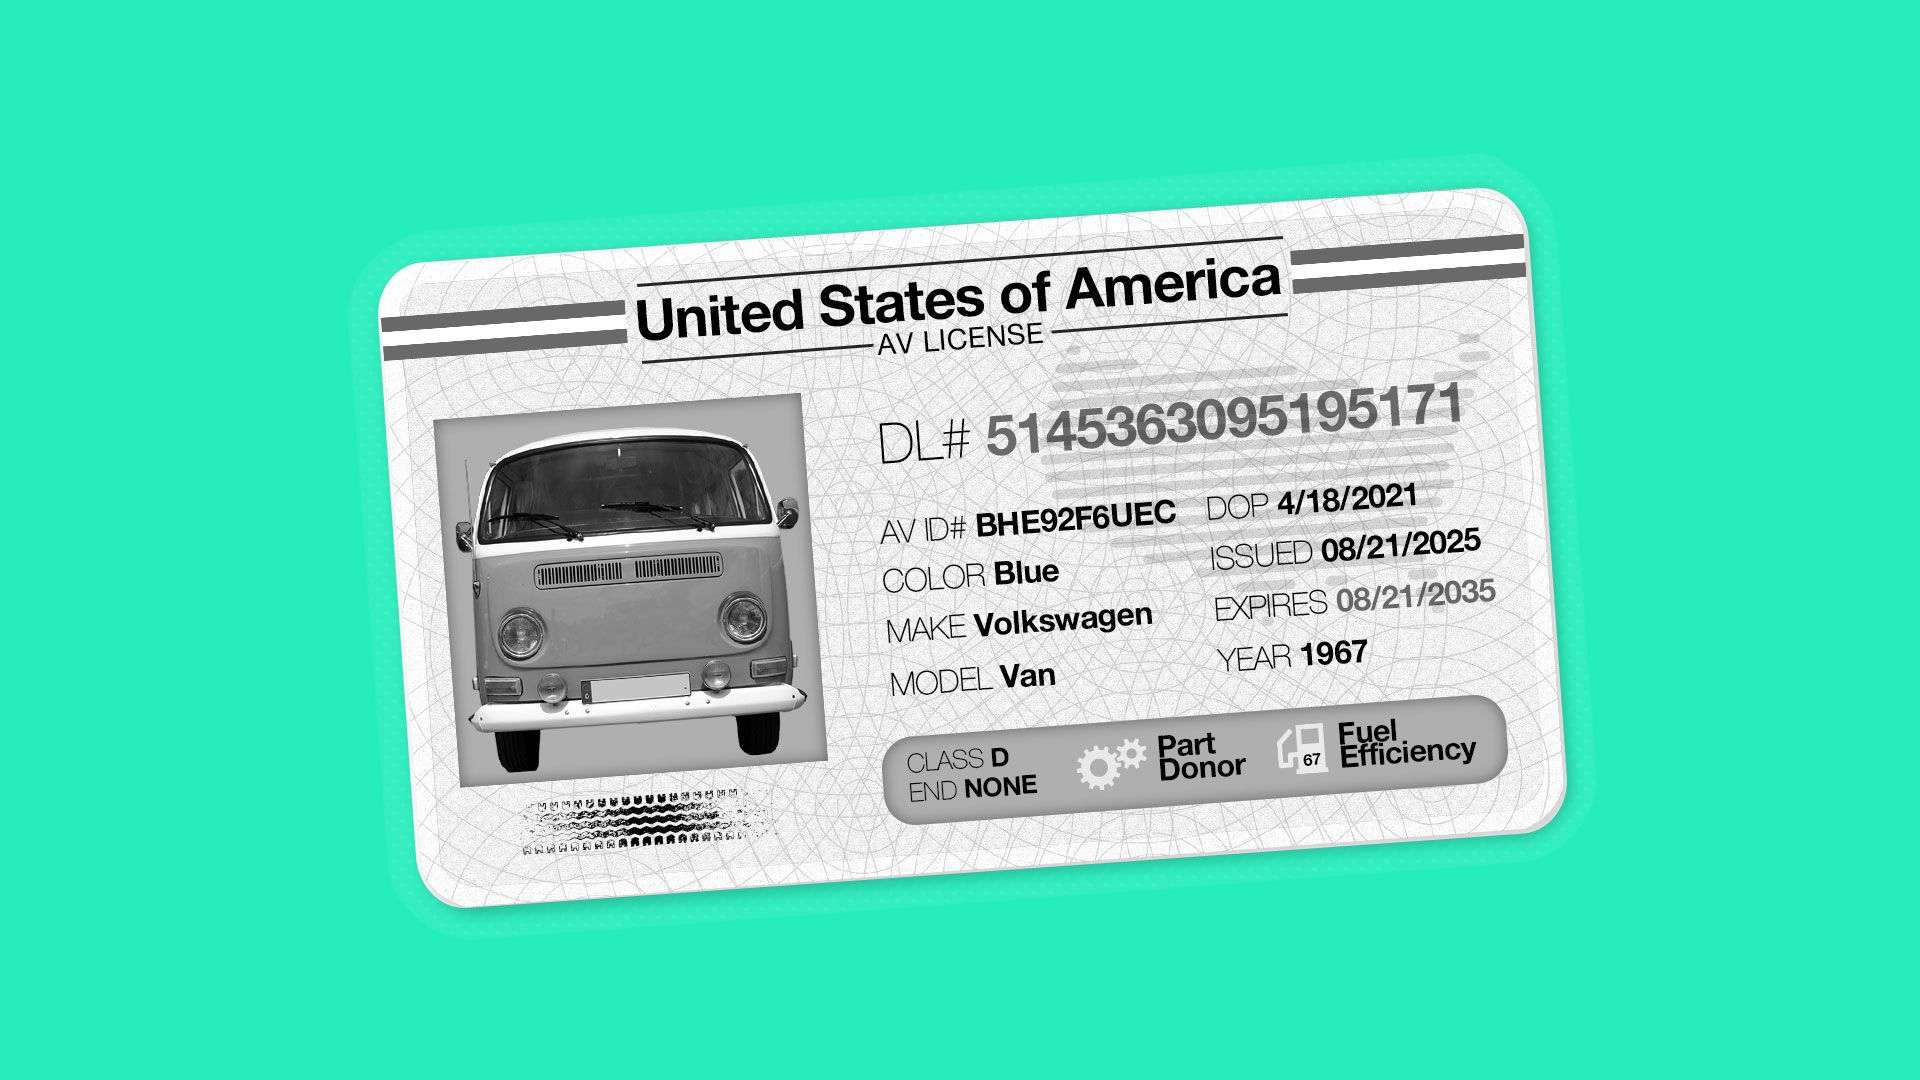 imagined mock-up of a driver's license for a self-driving car